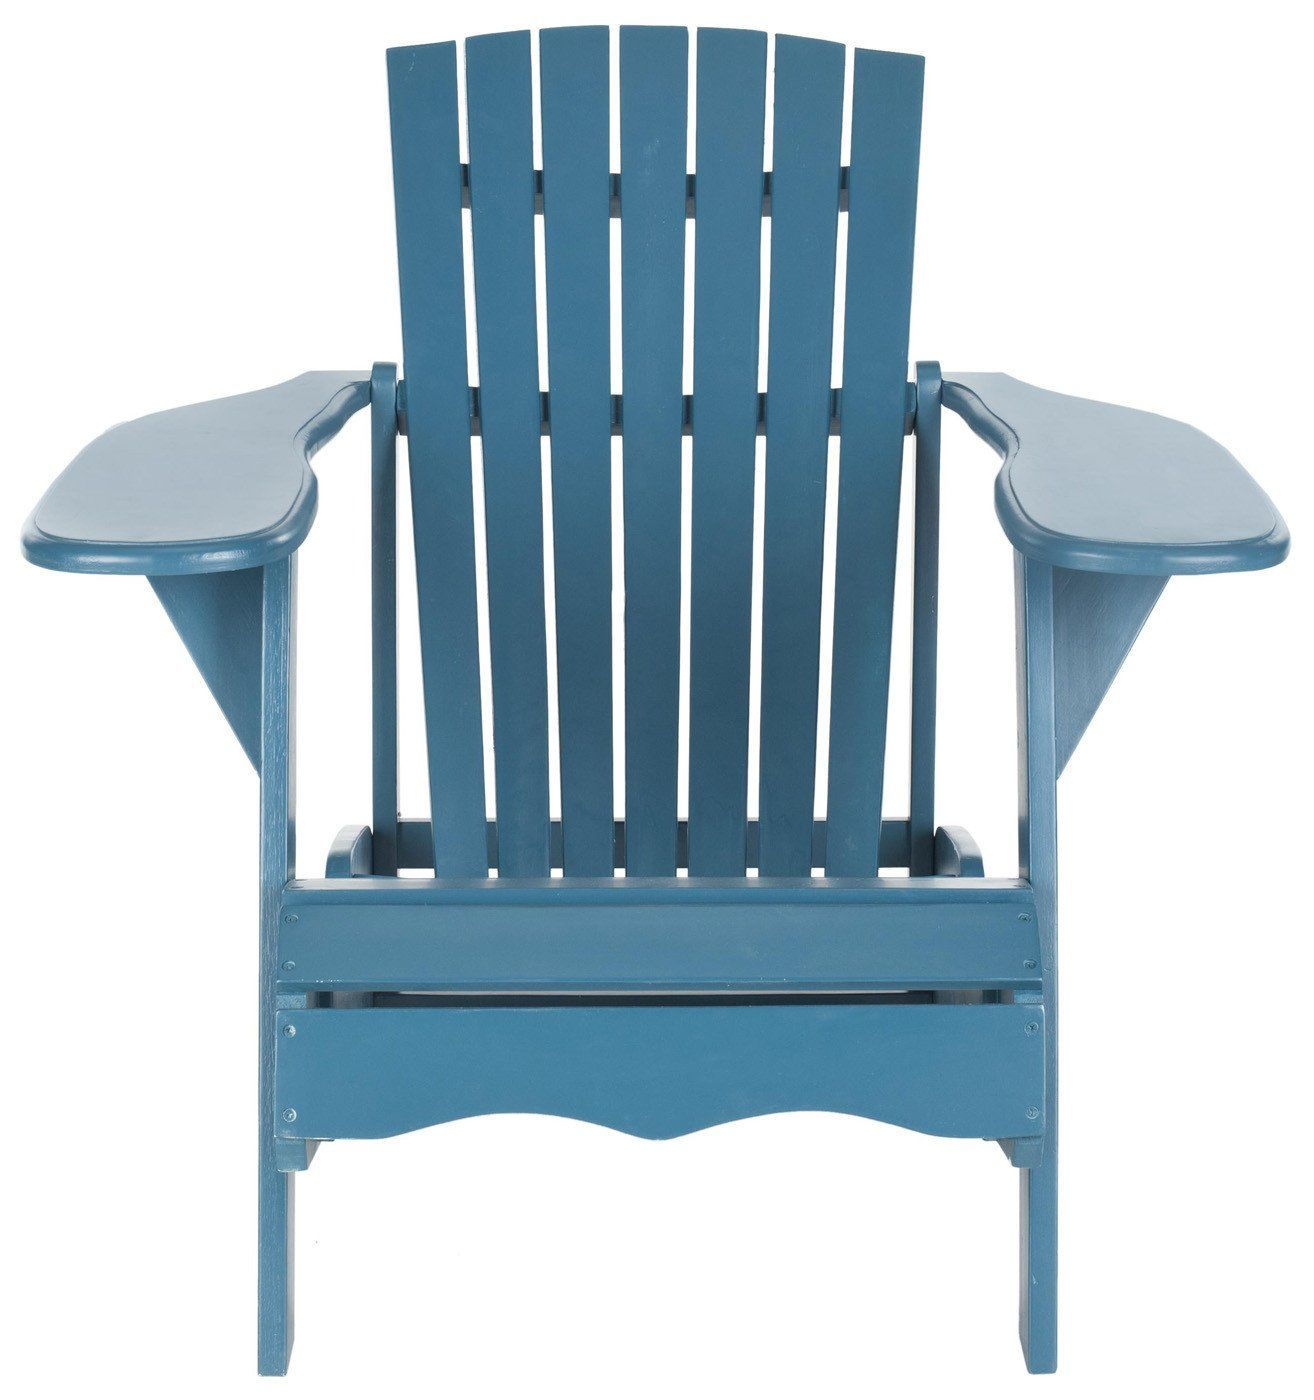 Mopani Adirondack Chair Teal Outdoor Armchair ...